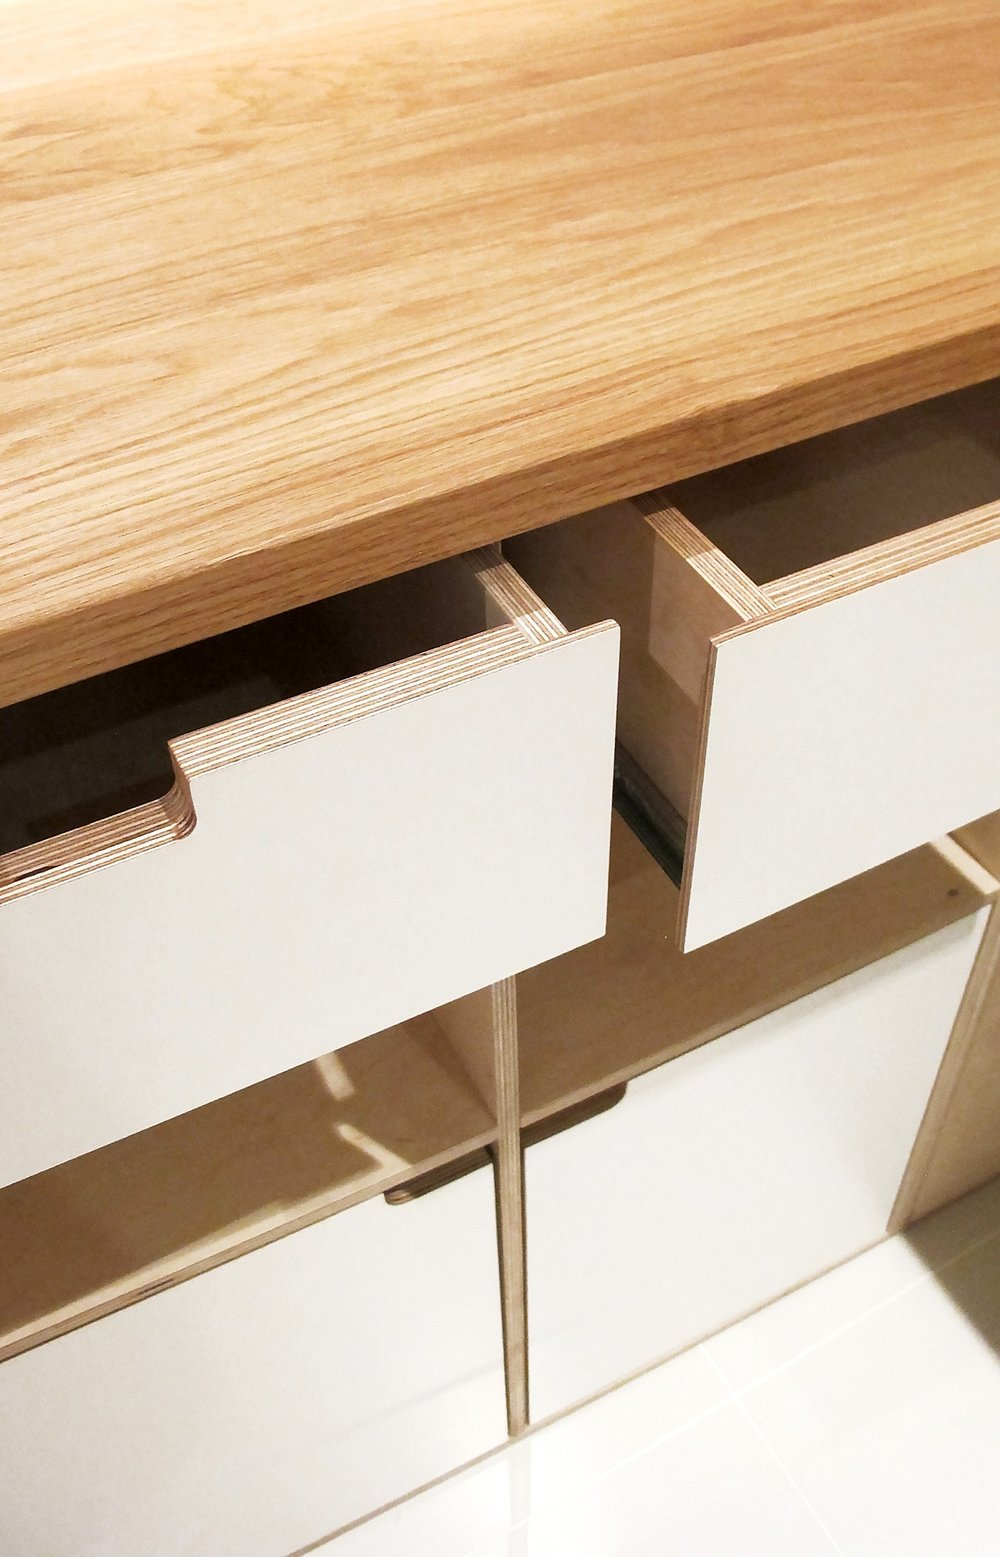 Cupboards are fitted with shelves and soft close drawers made to our client's exact specifications.